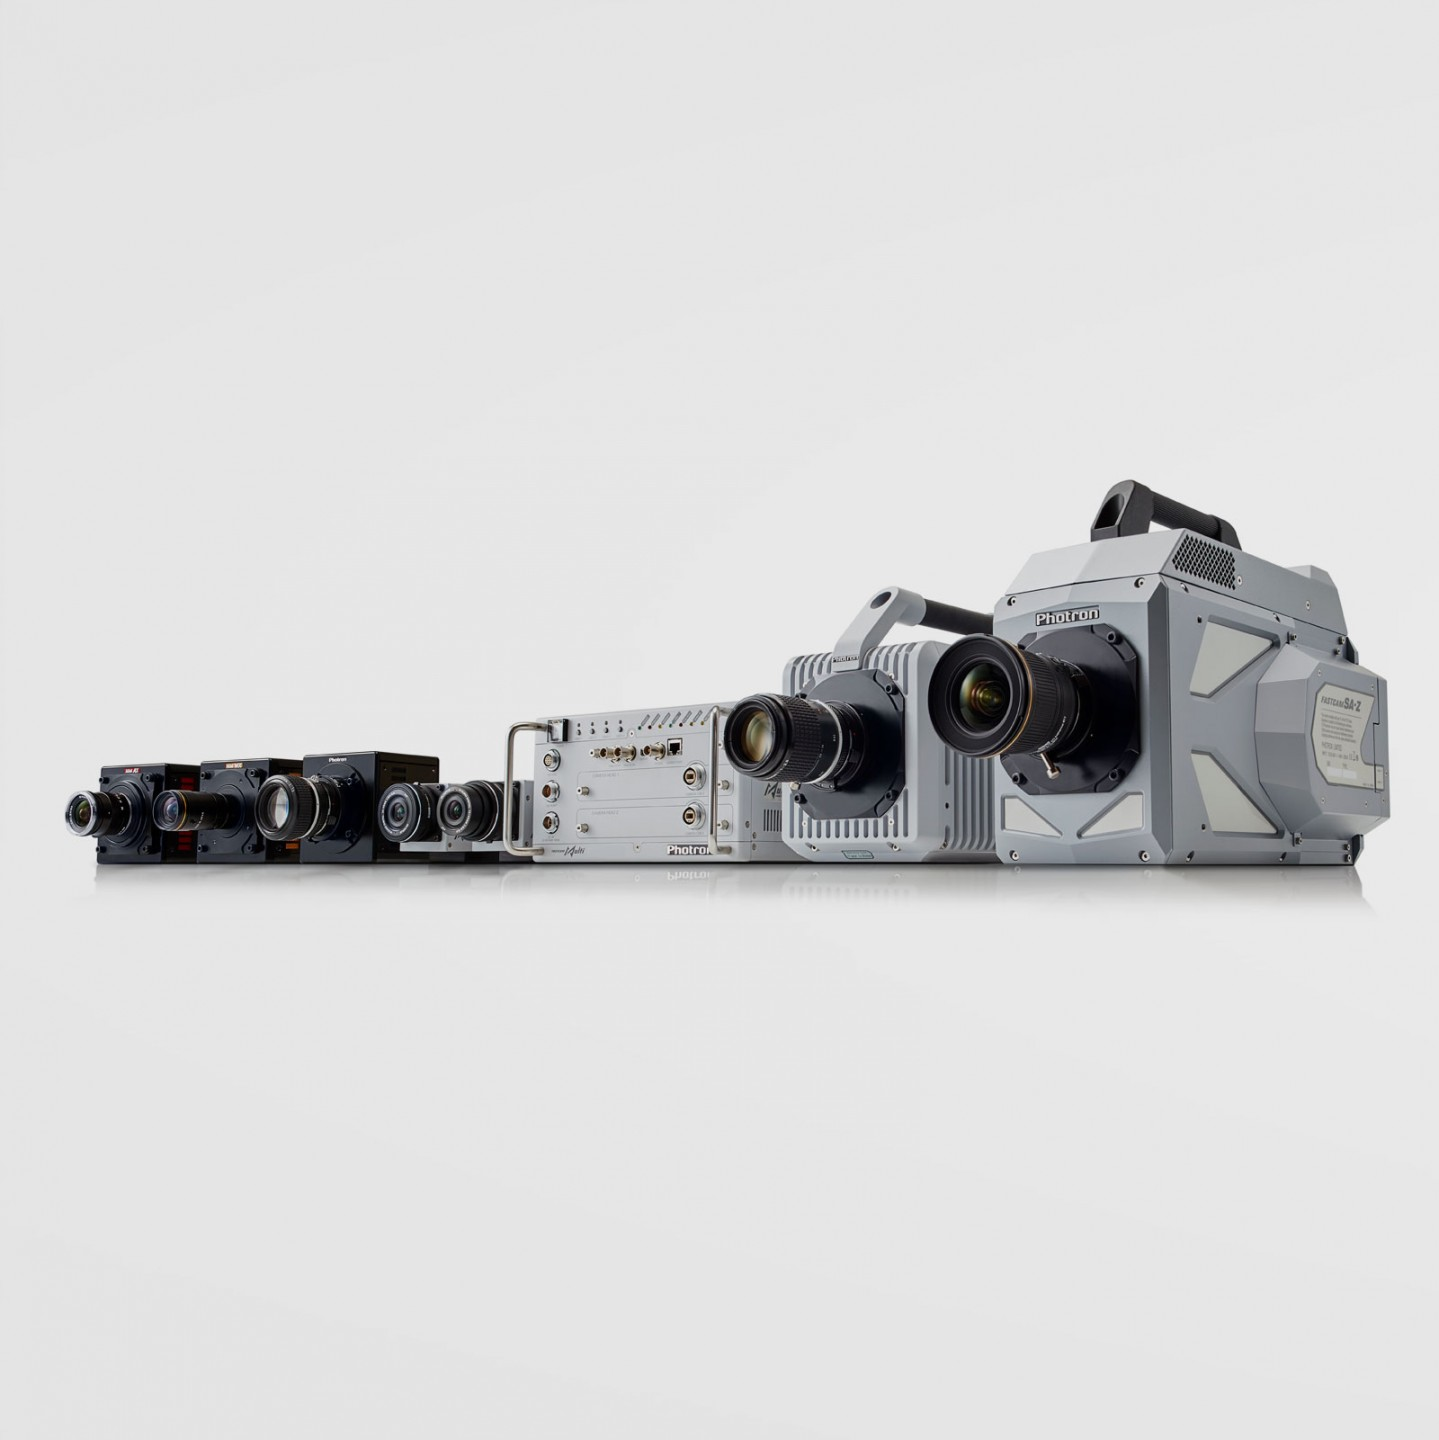 photron-high-speed-cameras-2